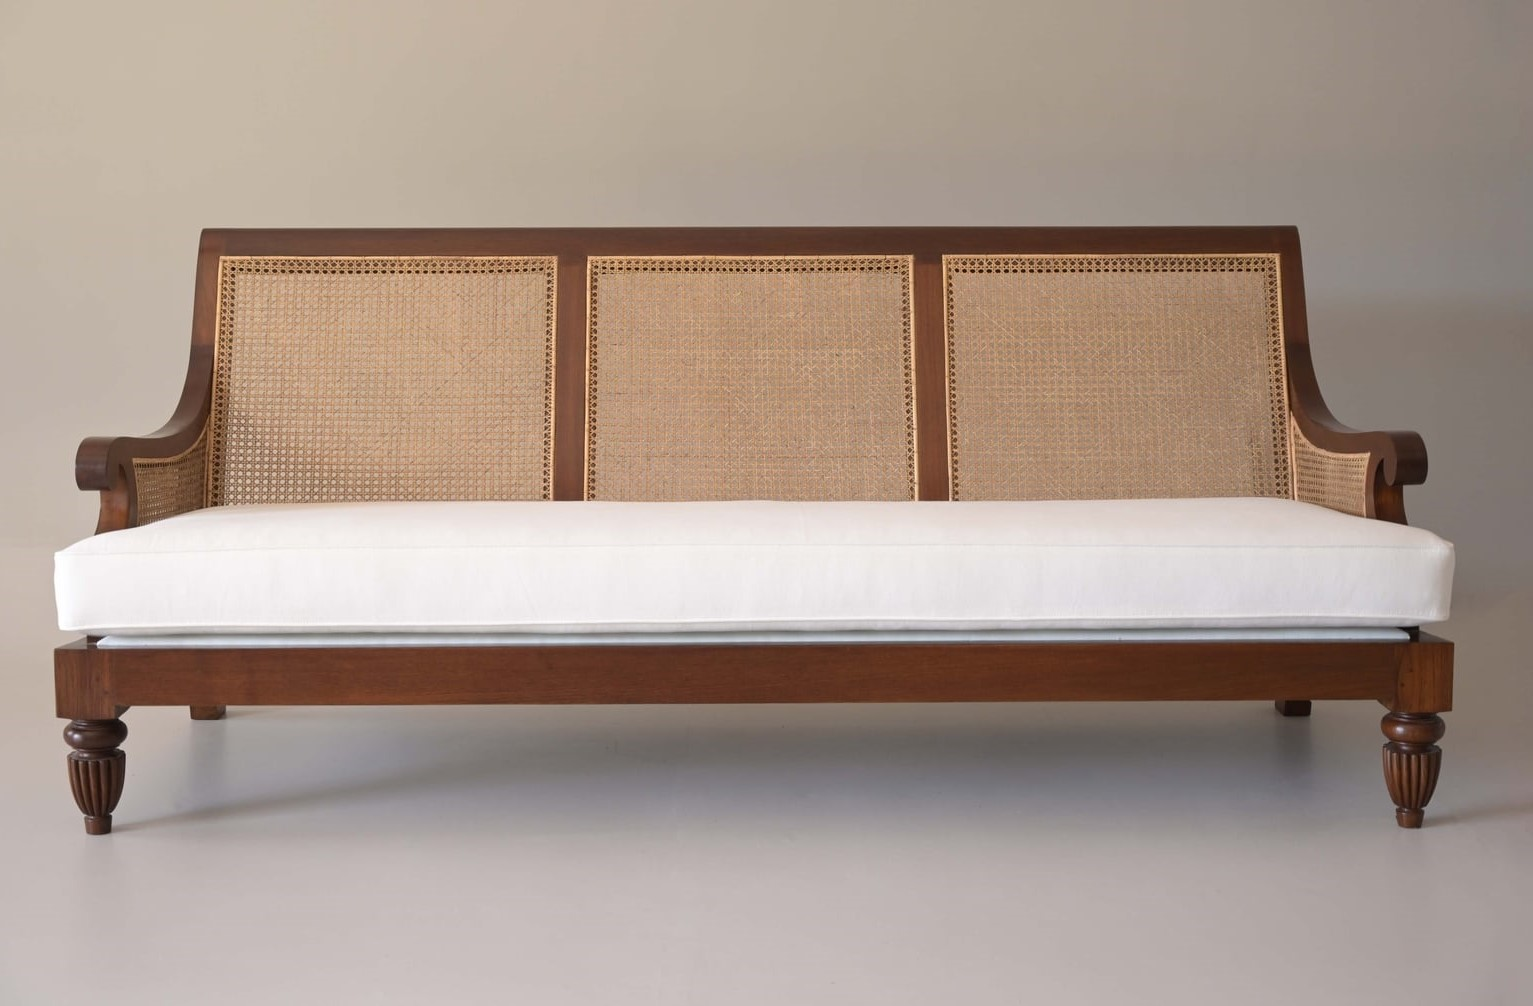 bergere sofa with fabric upholstery in teak wood best furniture